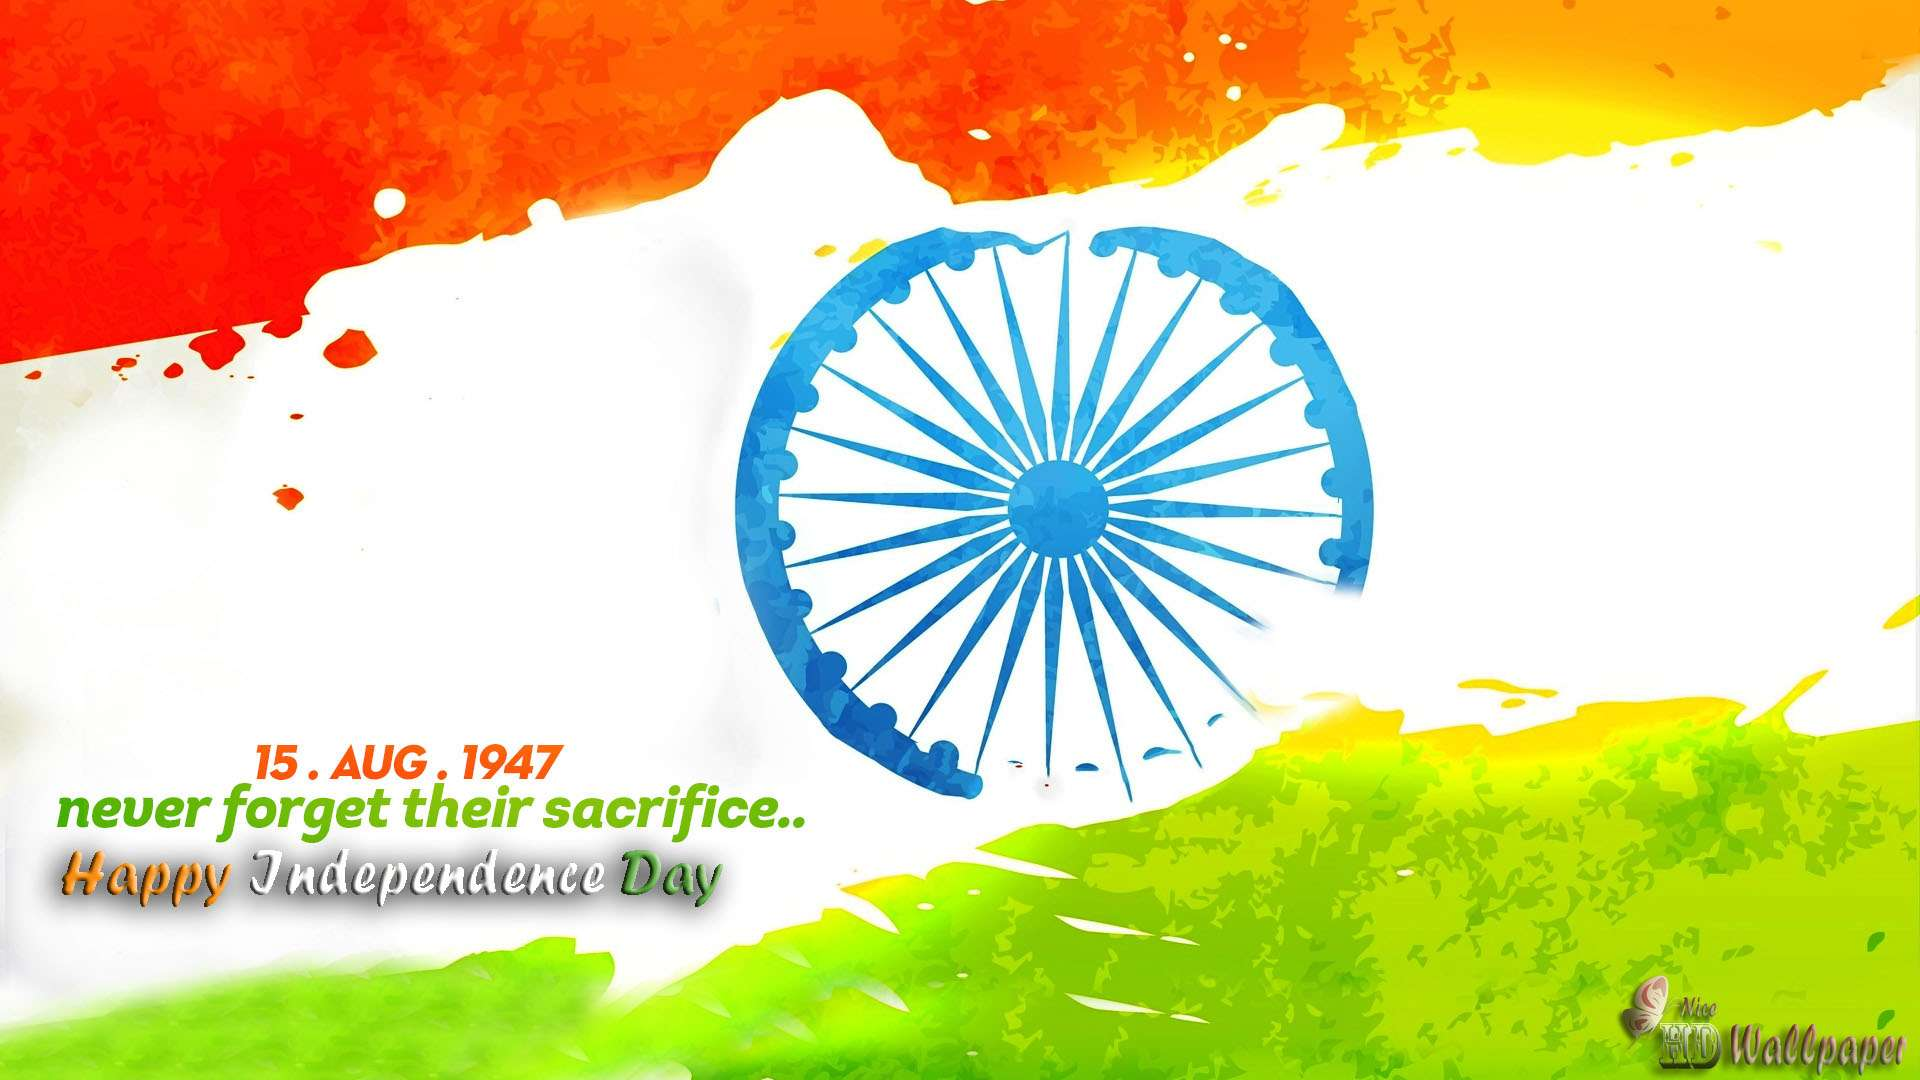 Day Happy Hd Indpeneence: 15 Augush 1947 Happy Independence Day Hd Wallpaper : Hd